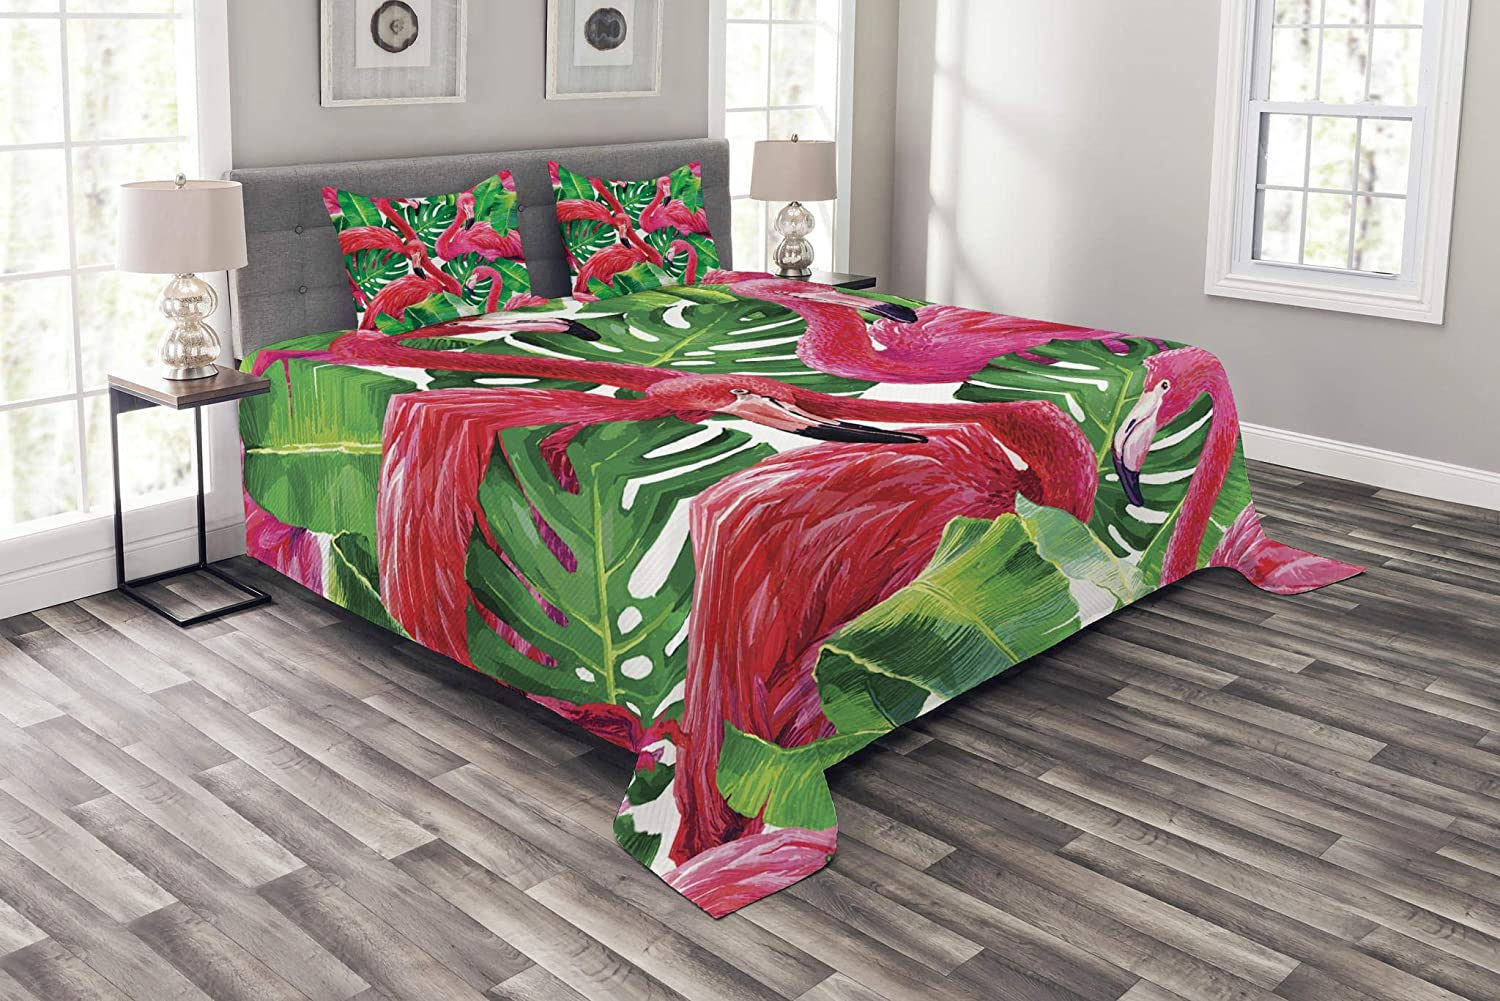 Bedspread Set with 2 Shams Decorative by Ambesonne Printed 3 Piece